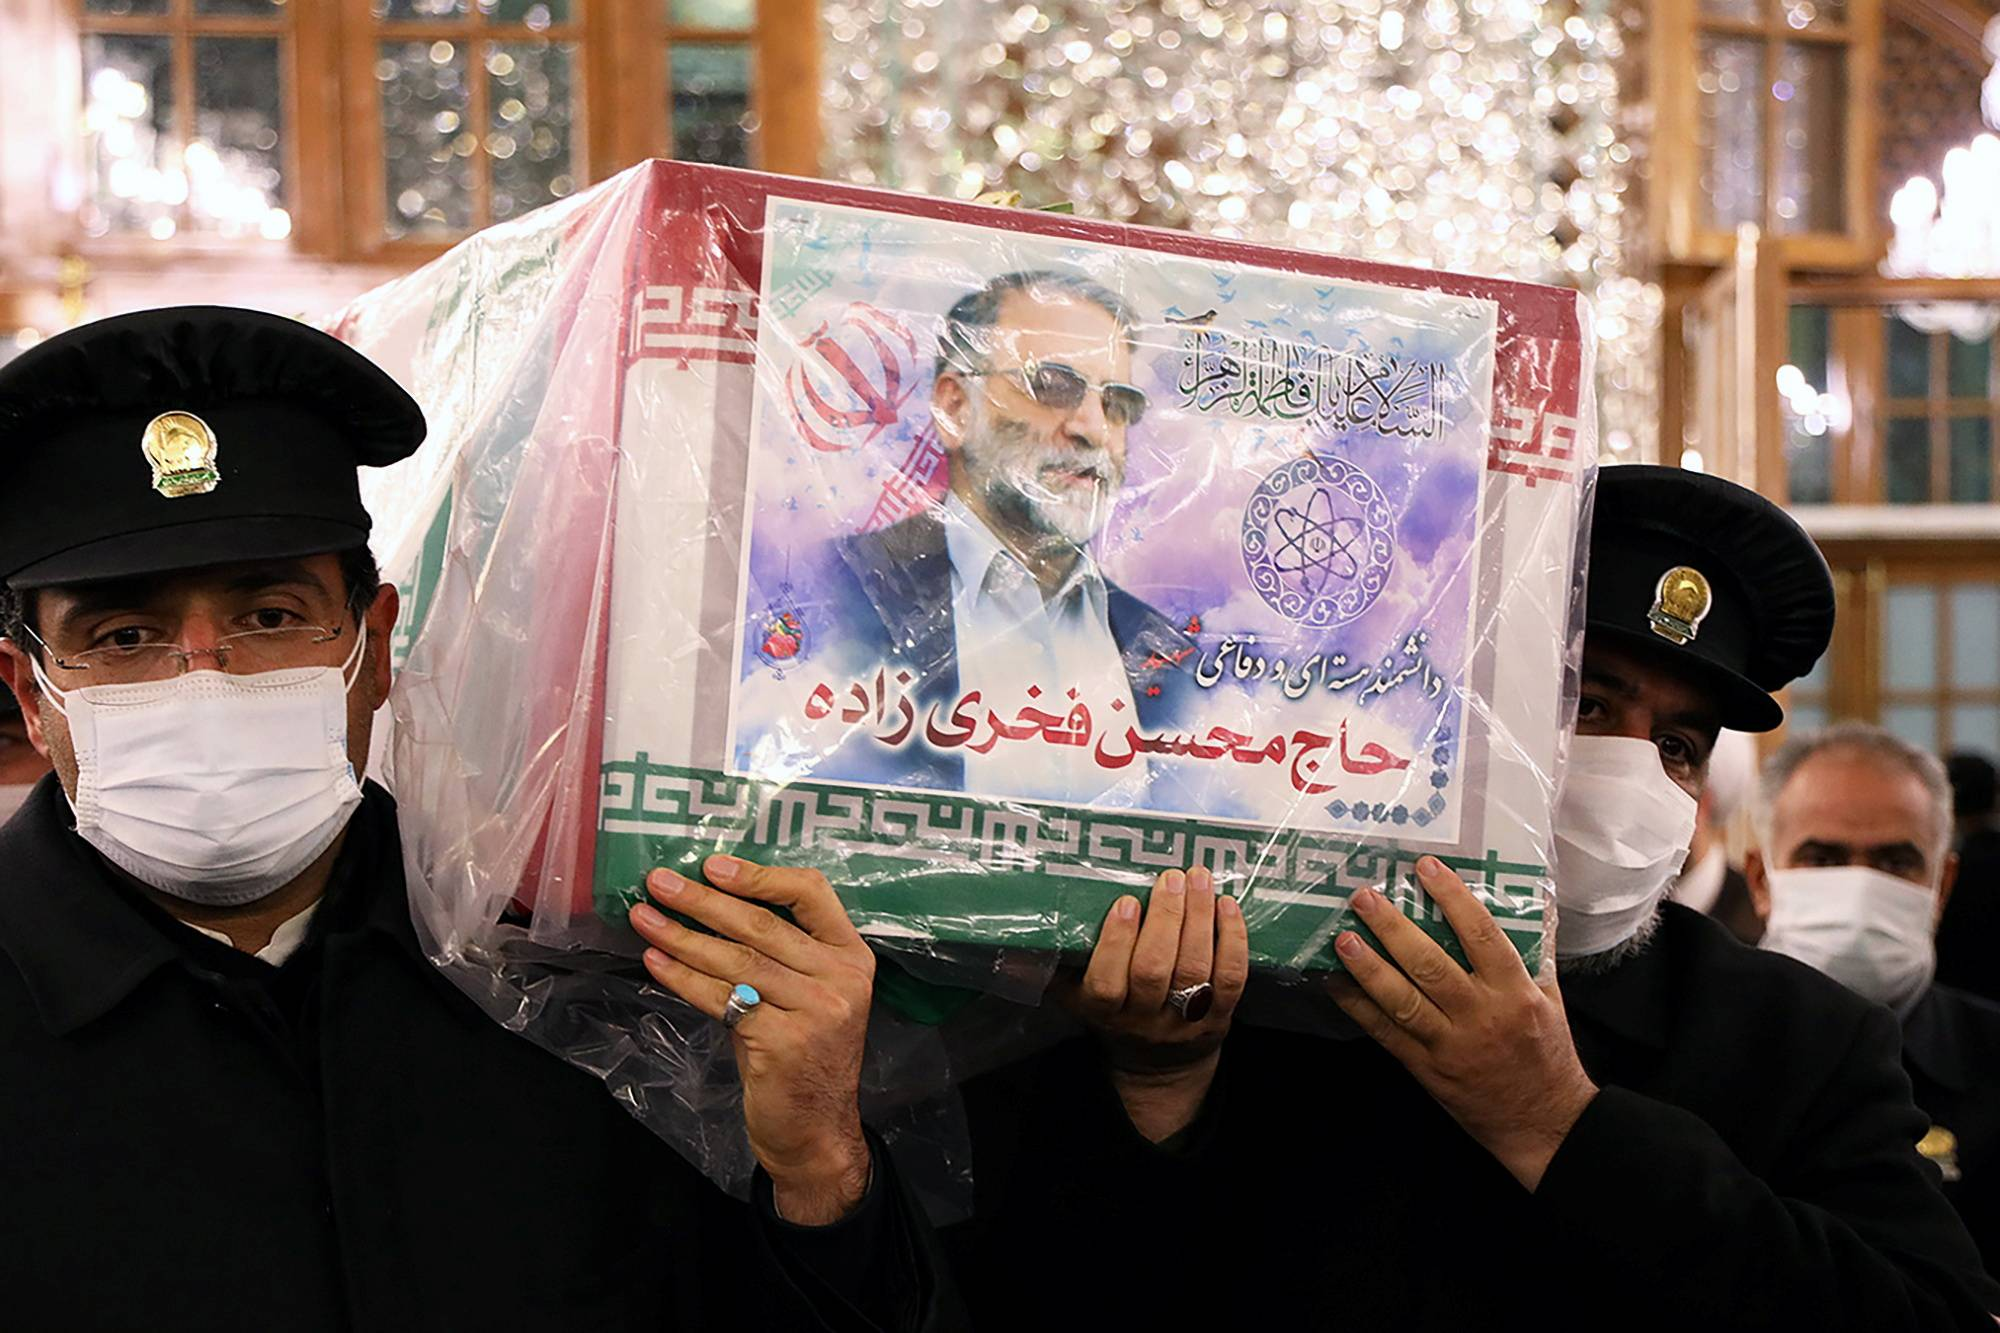 Mohsen Fakhrizadeh, whose coffin is seen being carried here in Mashhad, Iran, on Sunday, was sometimes described as Iran's Robert Oppenheimer, the scientist at the center of America's pioneering nuclear weapons project in the 1940s. | WEST ASIA NEWS AGENCY / VIA REUTERS